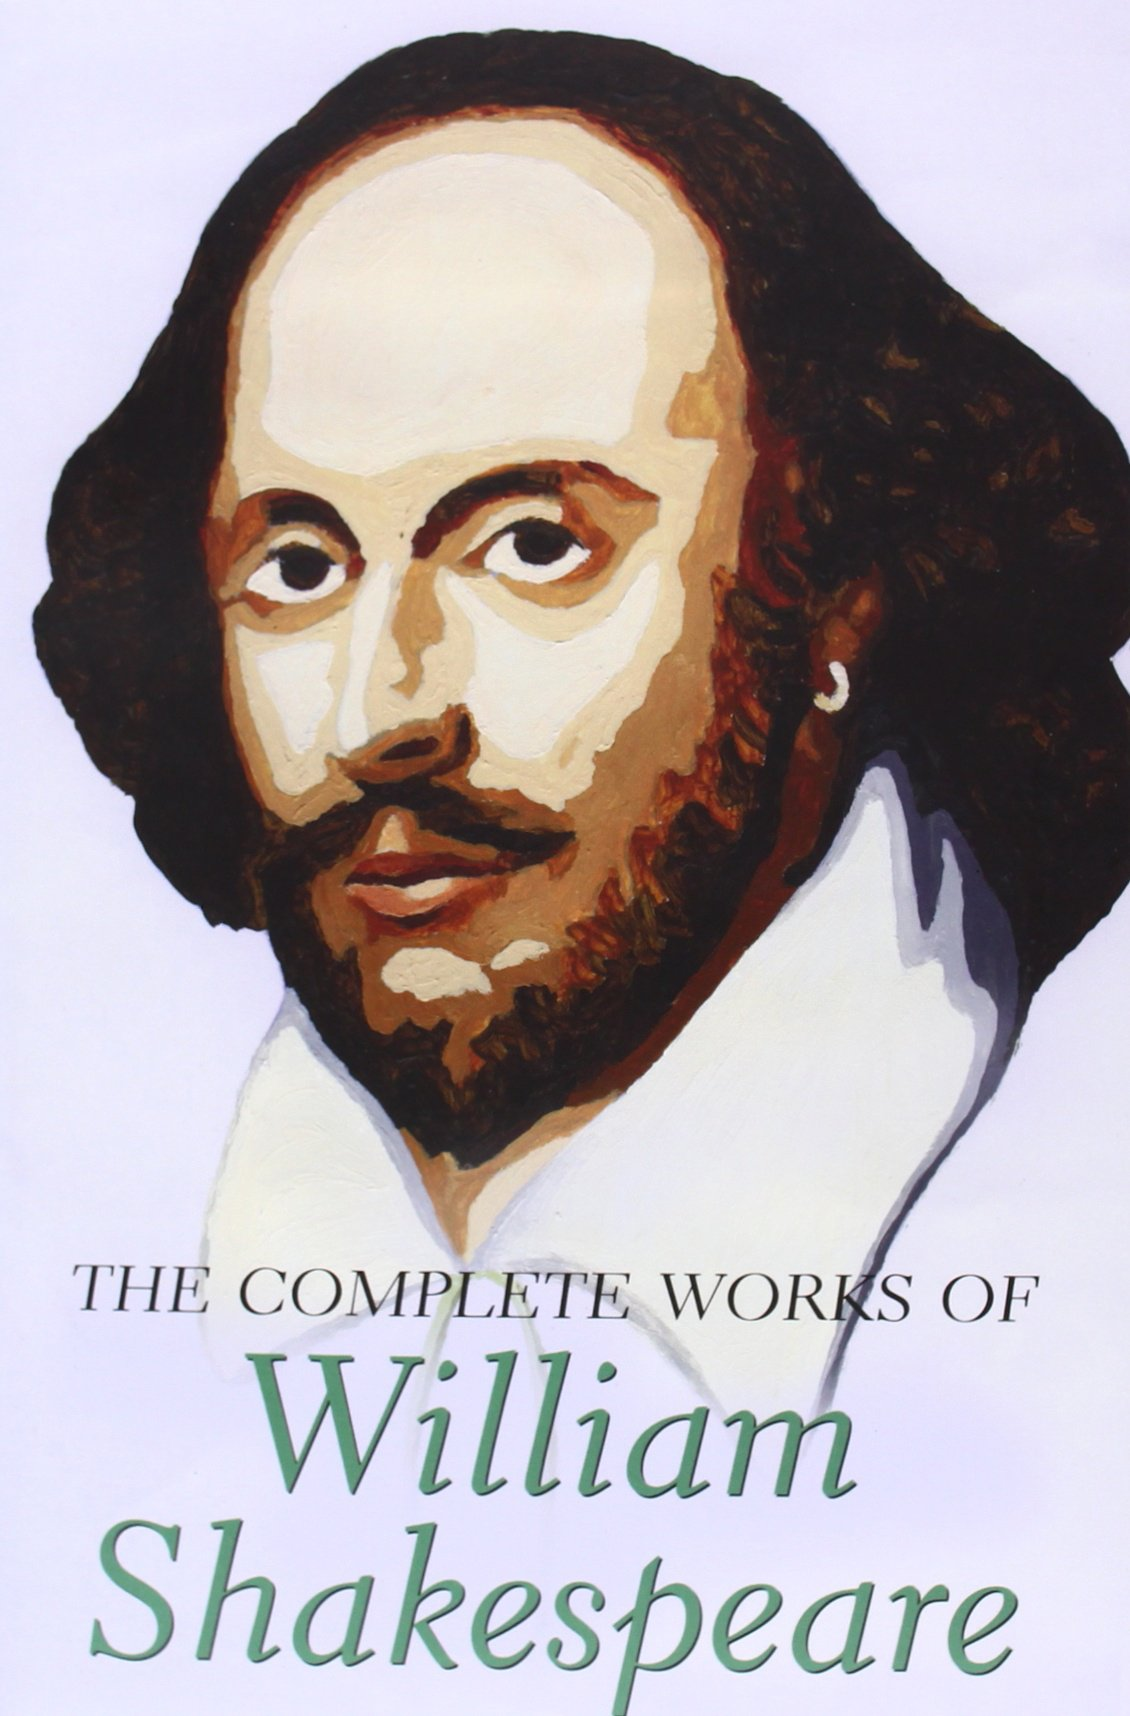 The Complete Works of William Shakespeare ISBN-13 9781853268953